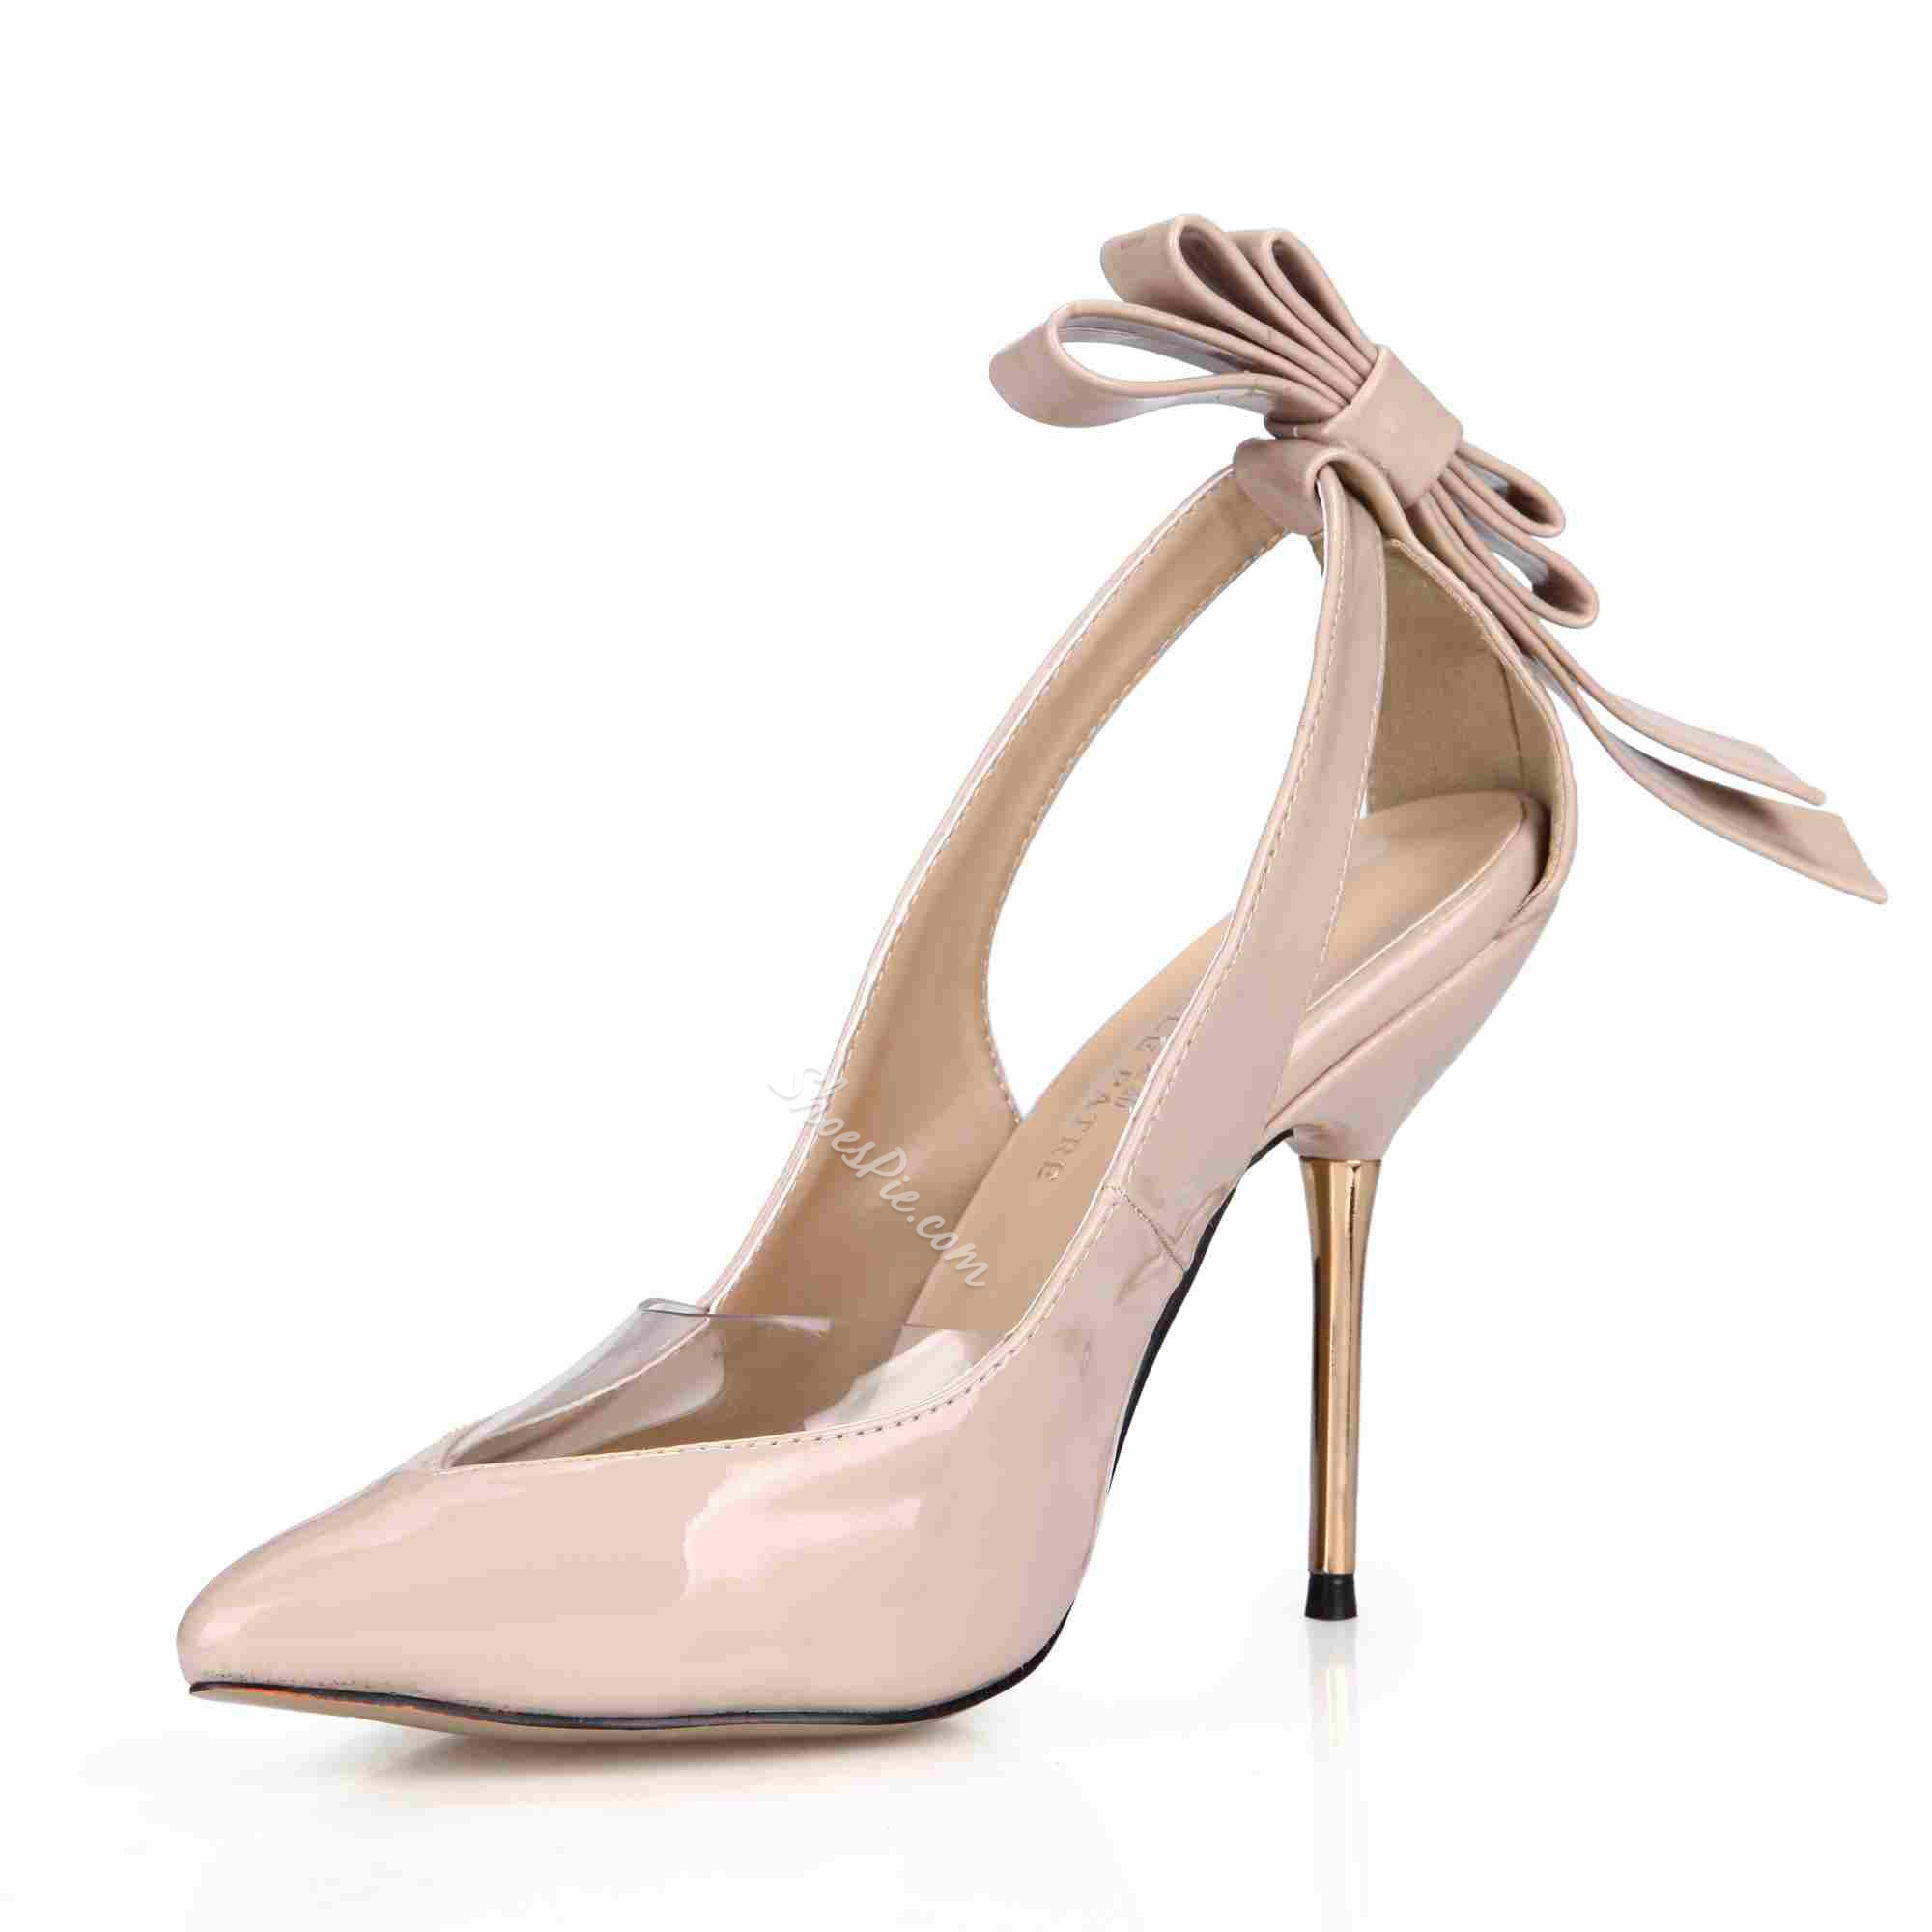 Shoespie Elegant Pointed Toe Knot Stiletto Heels